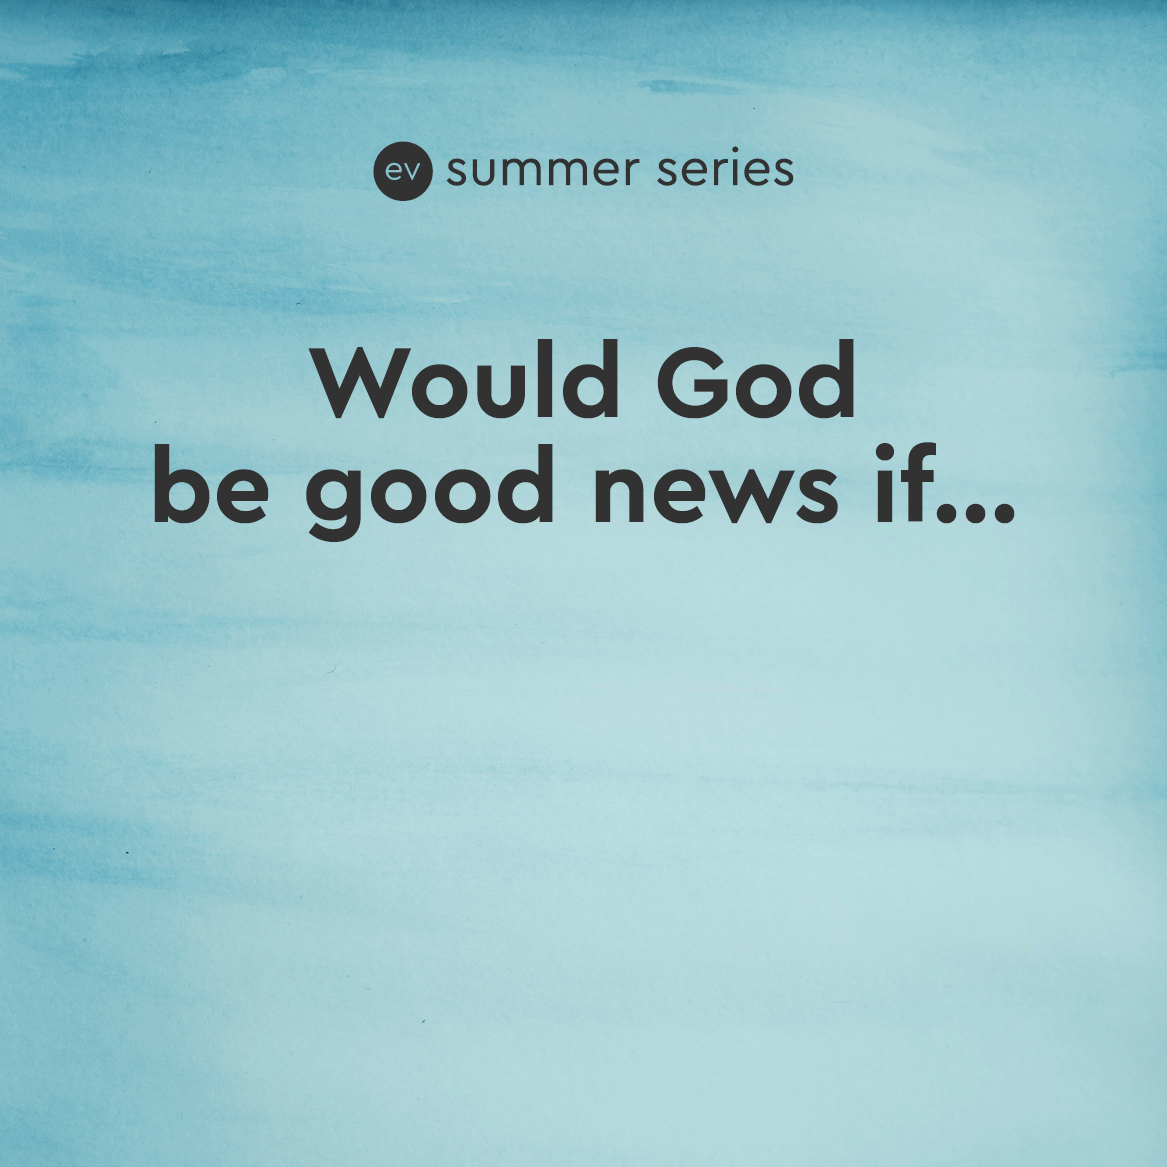 Would God be good news if...